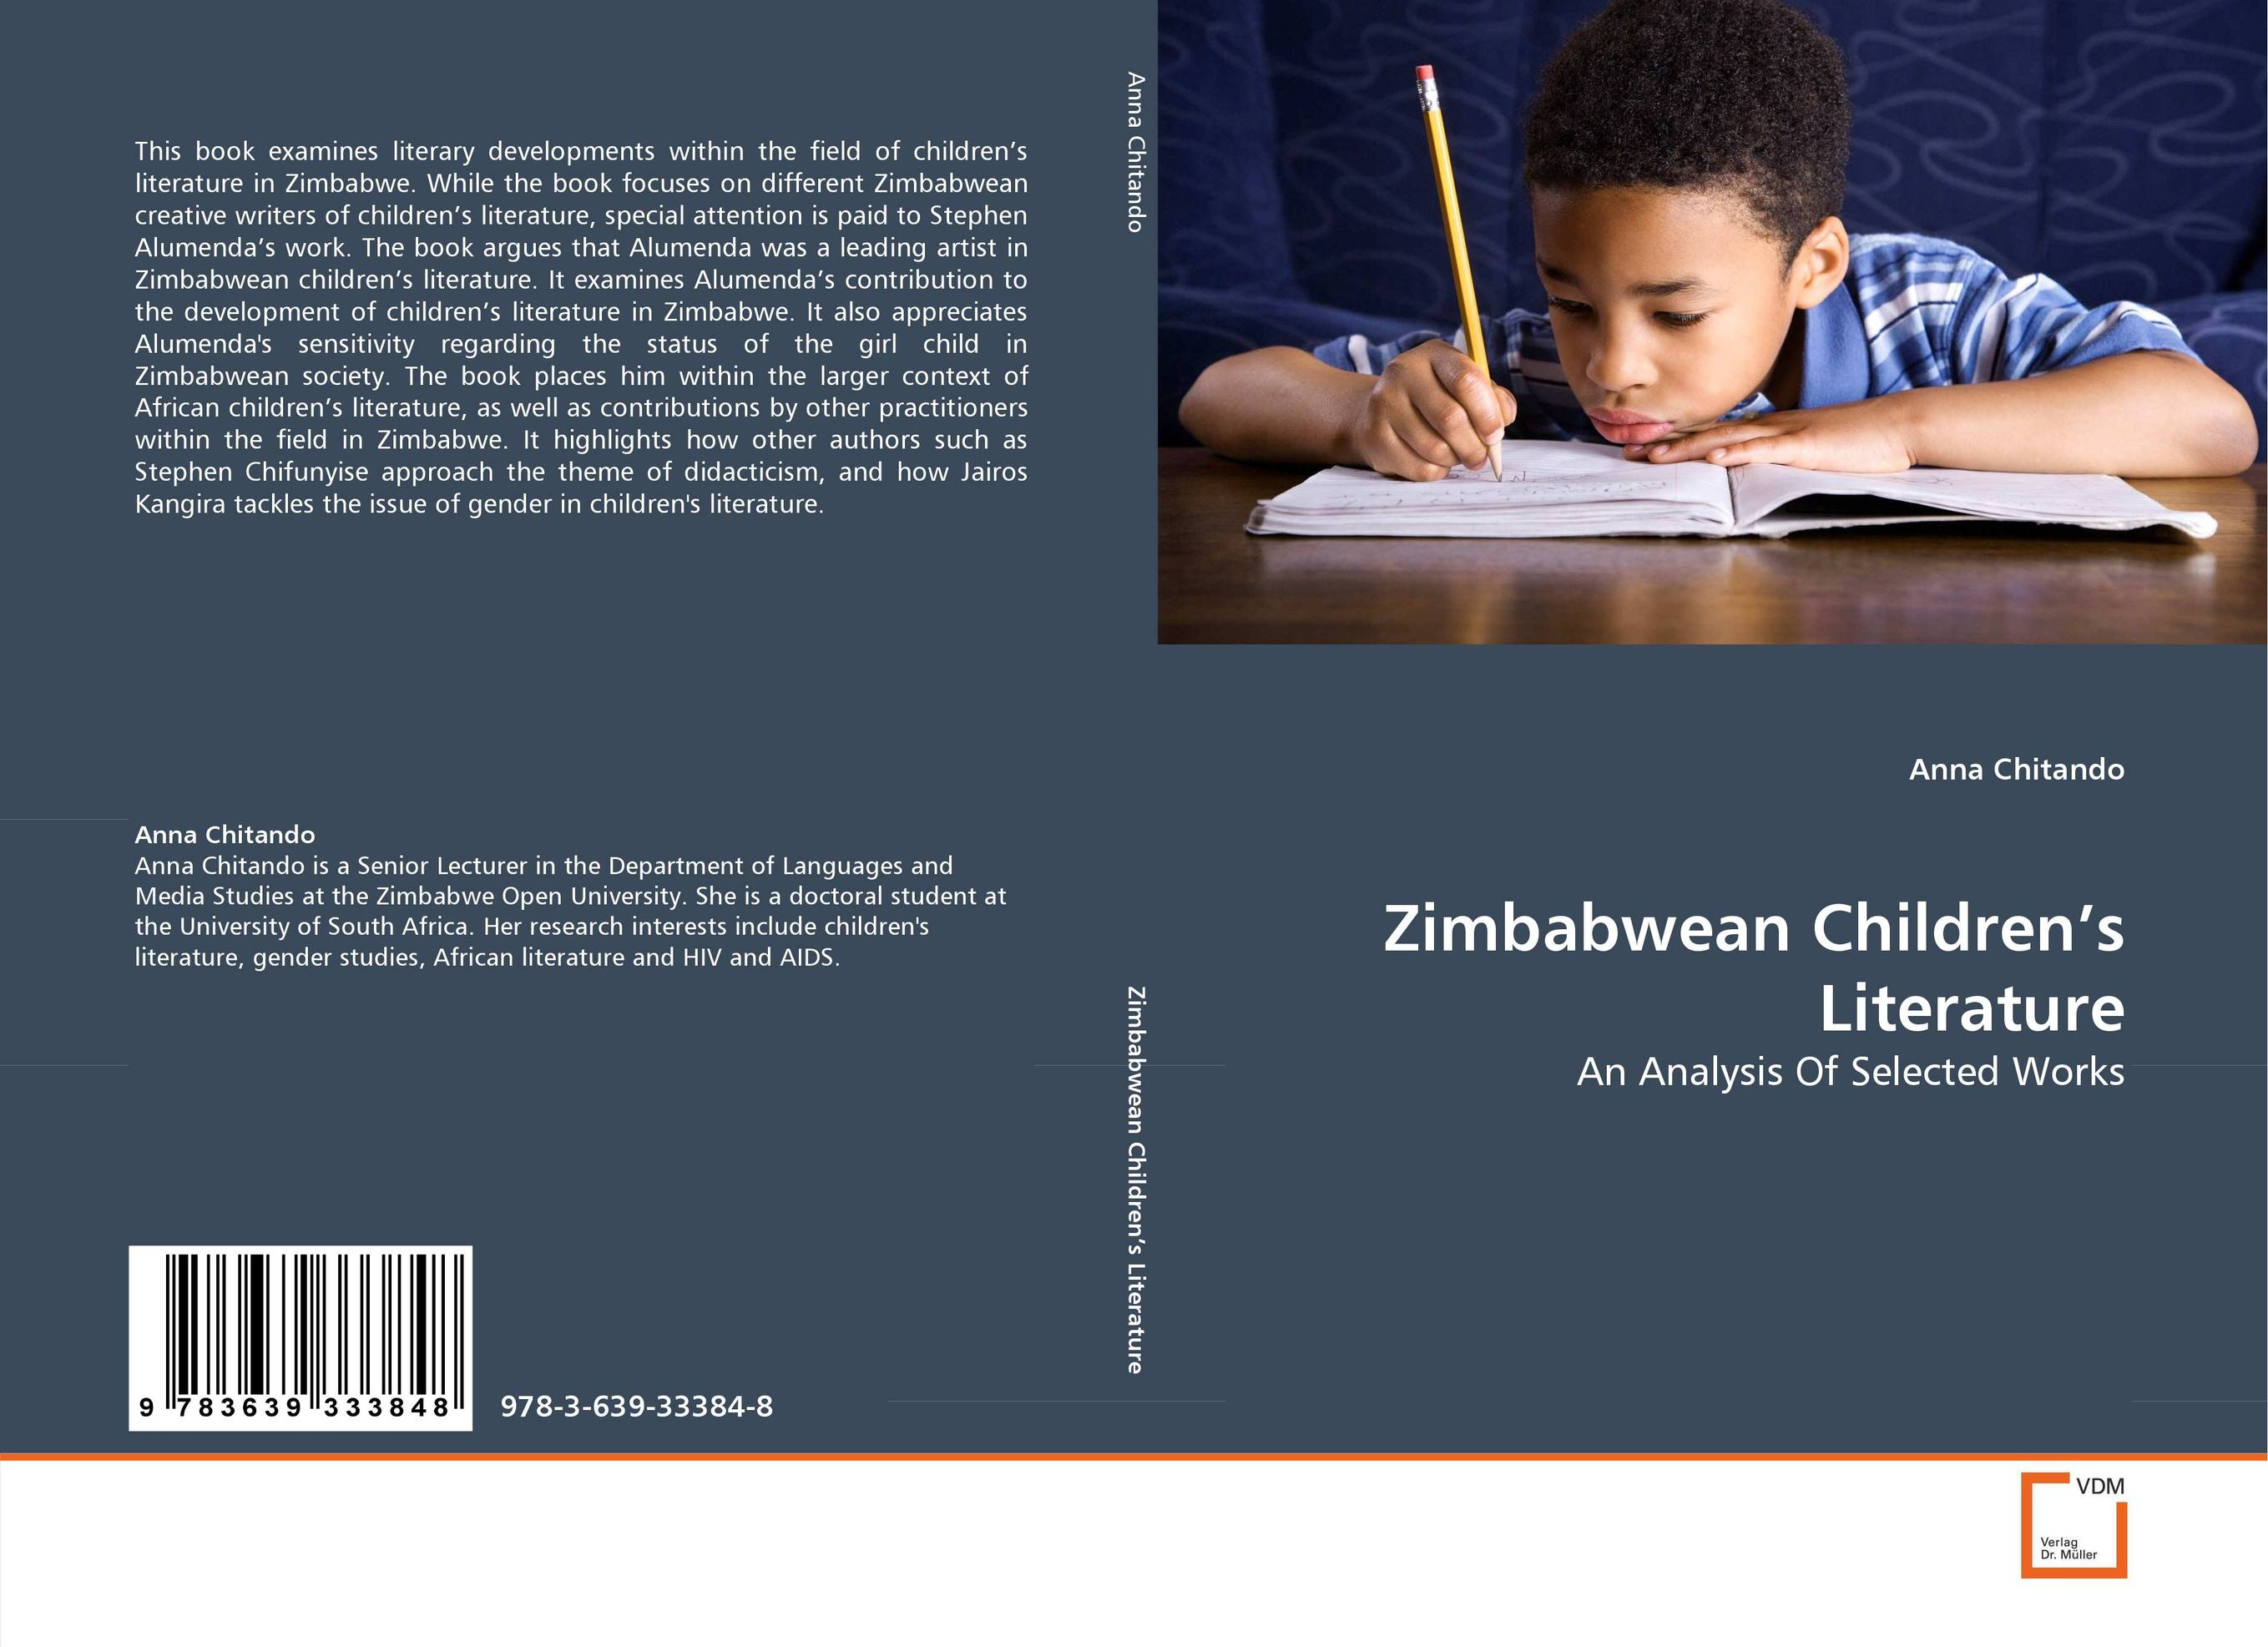 ZIMBABWEAN CHILDREN''S LITERATURE